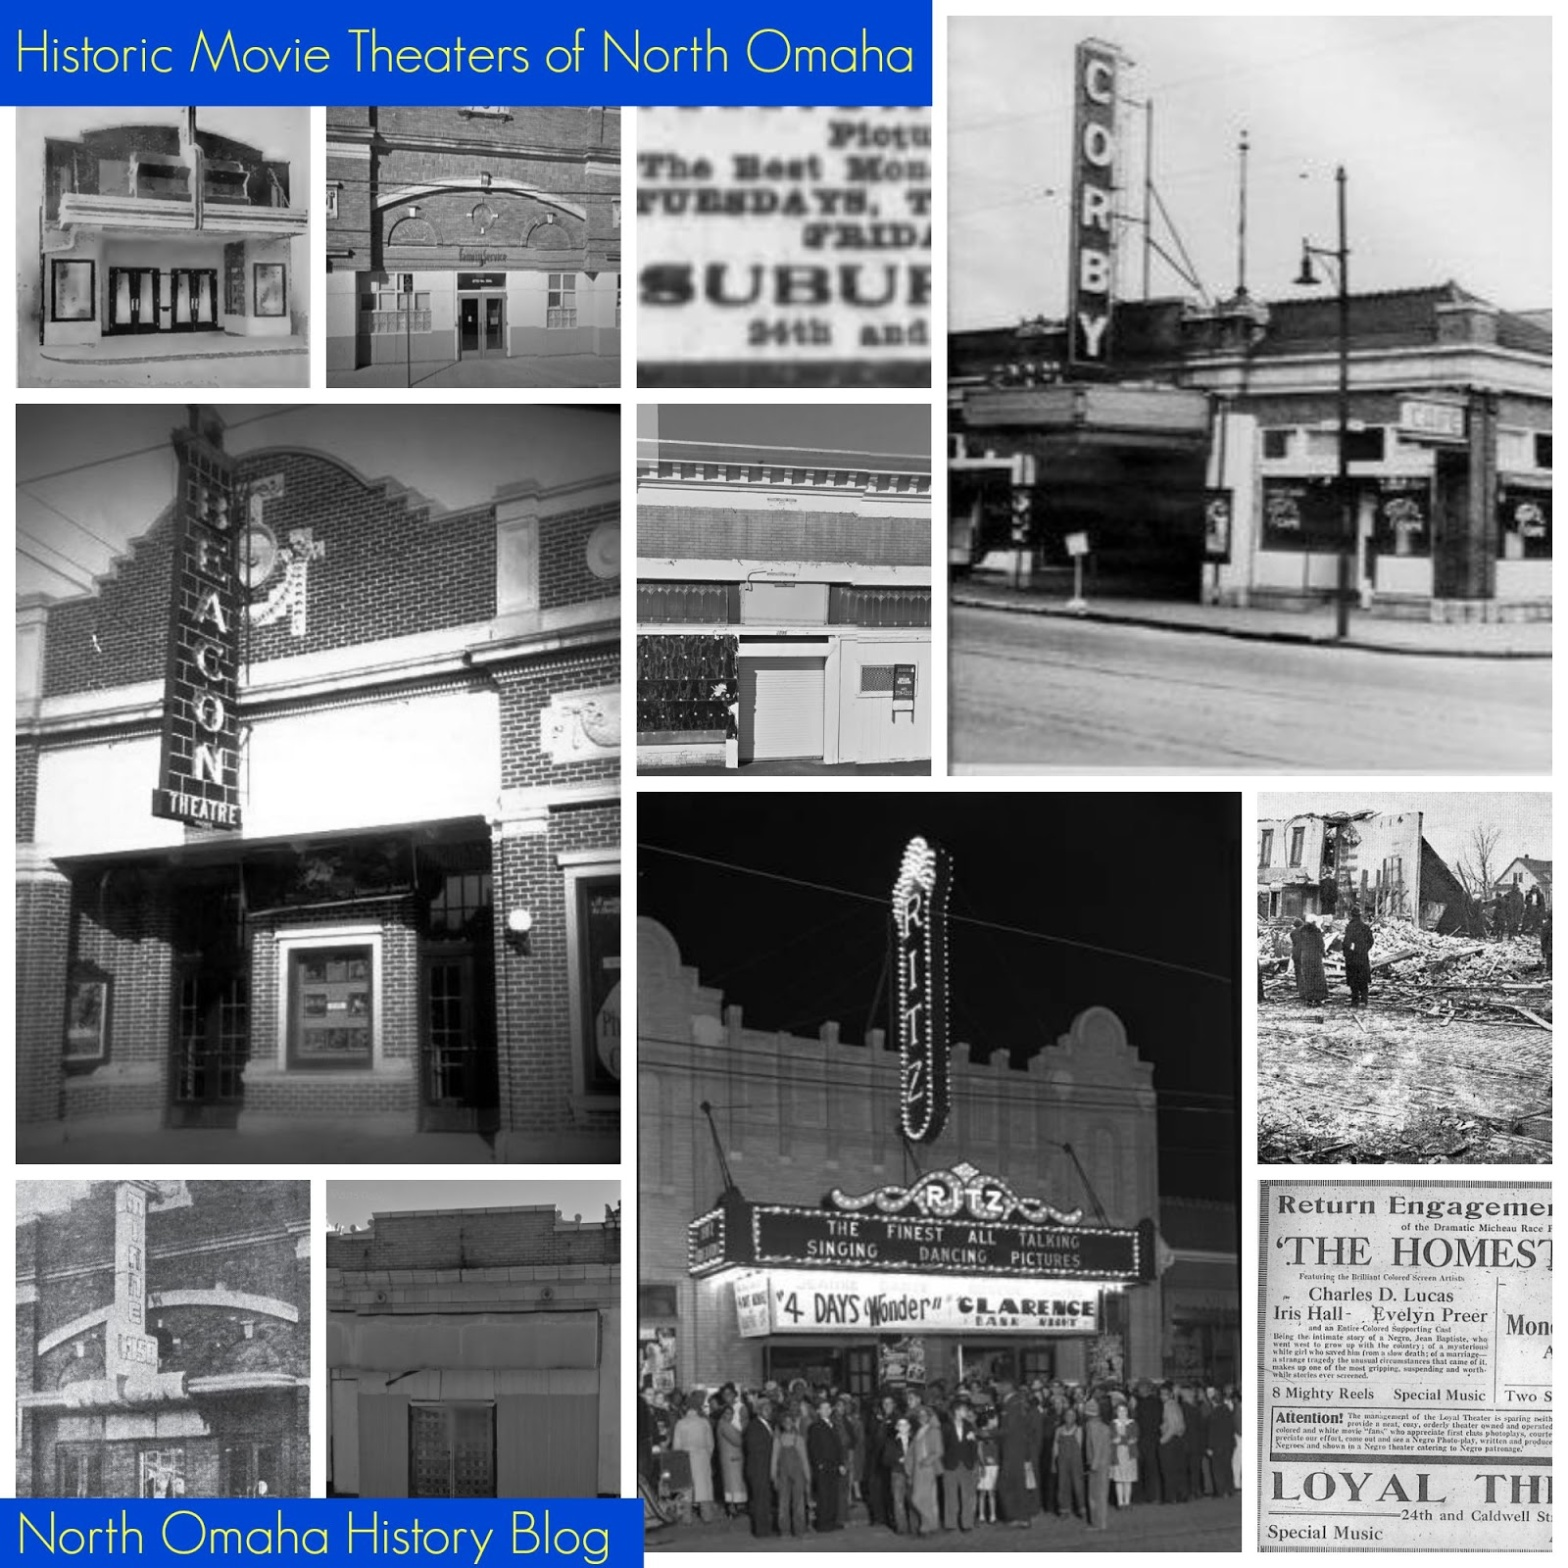 Historic movie theaters of North Omaha, Nebraska